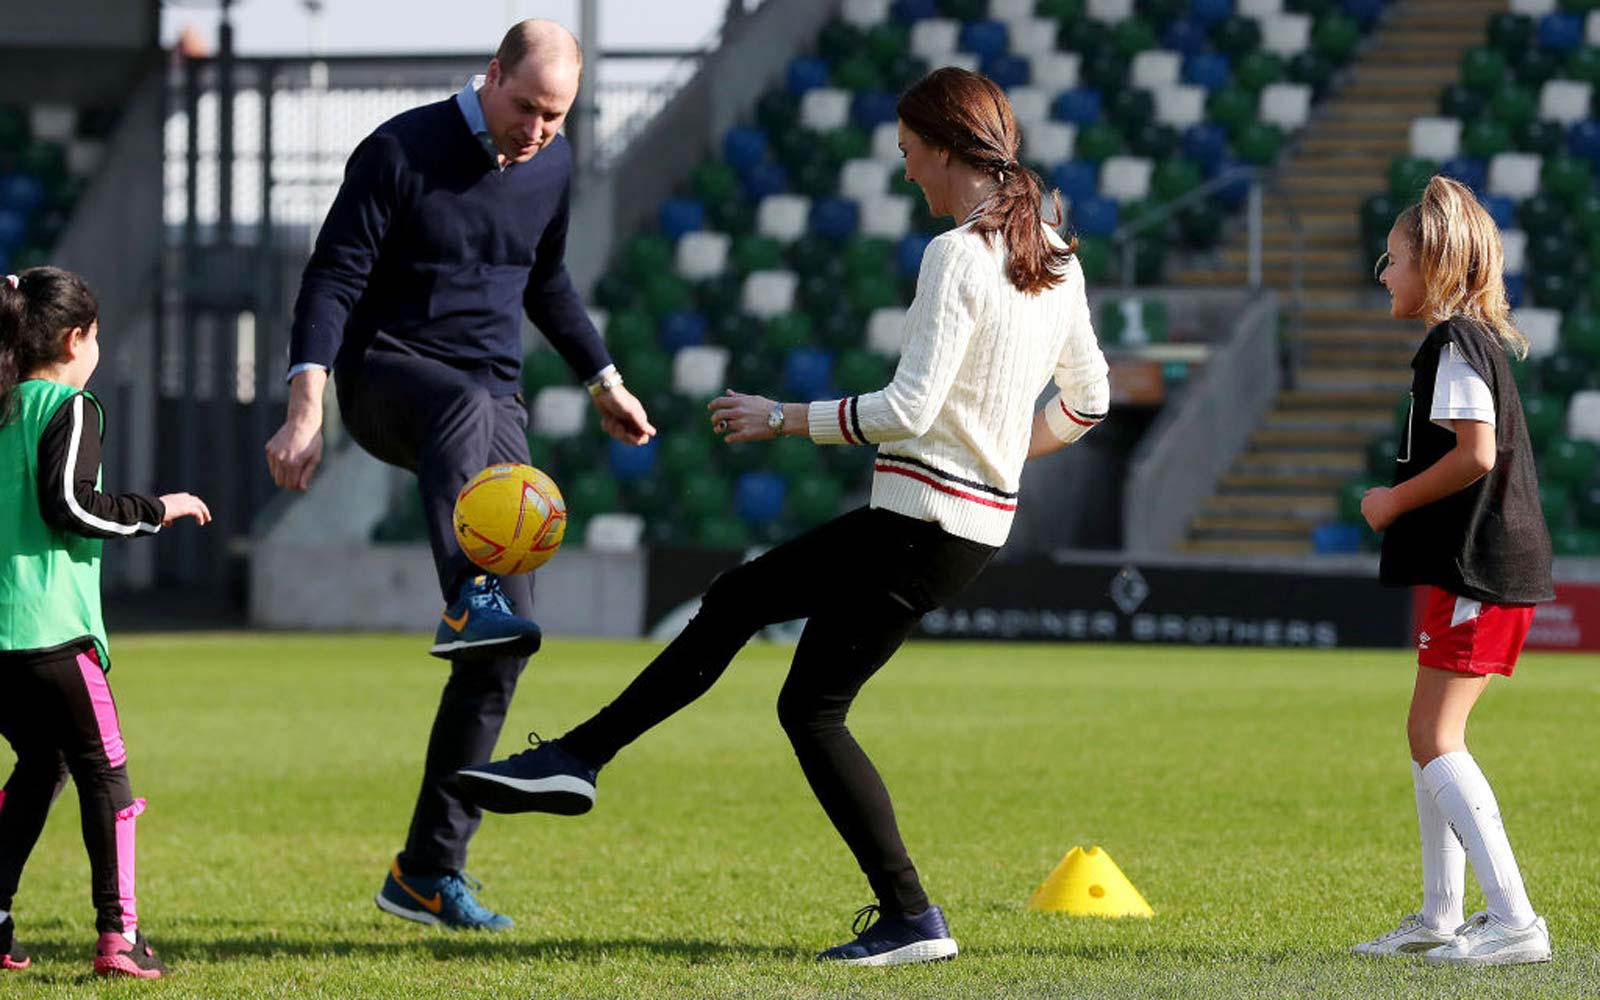 Prince William Duke of Cambridge and Catherine, Duchess of Cambridge, play football during a visit the National Stadium in Belfast